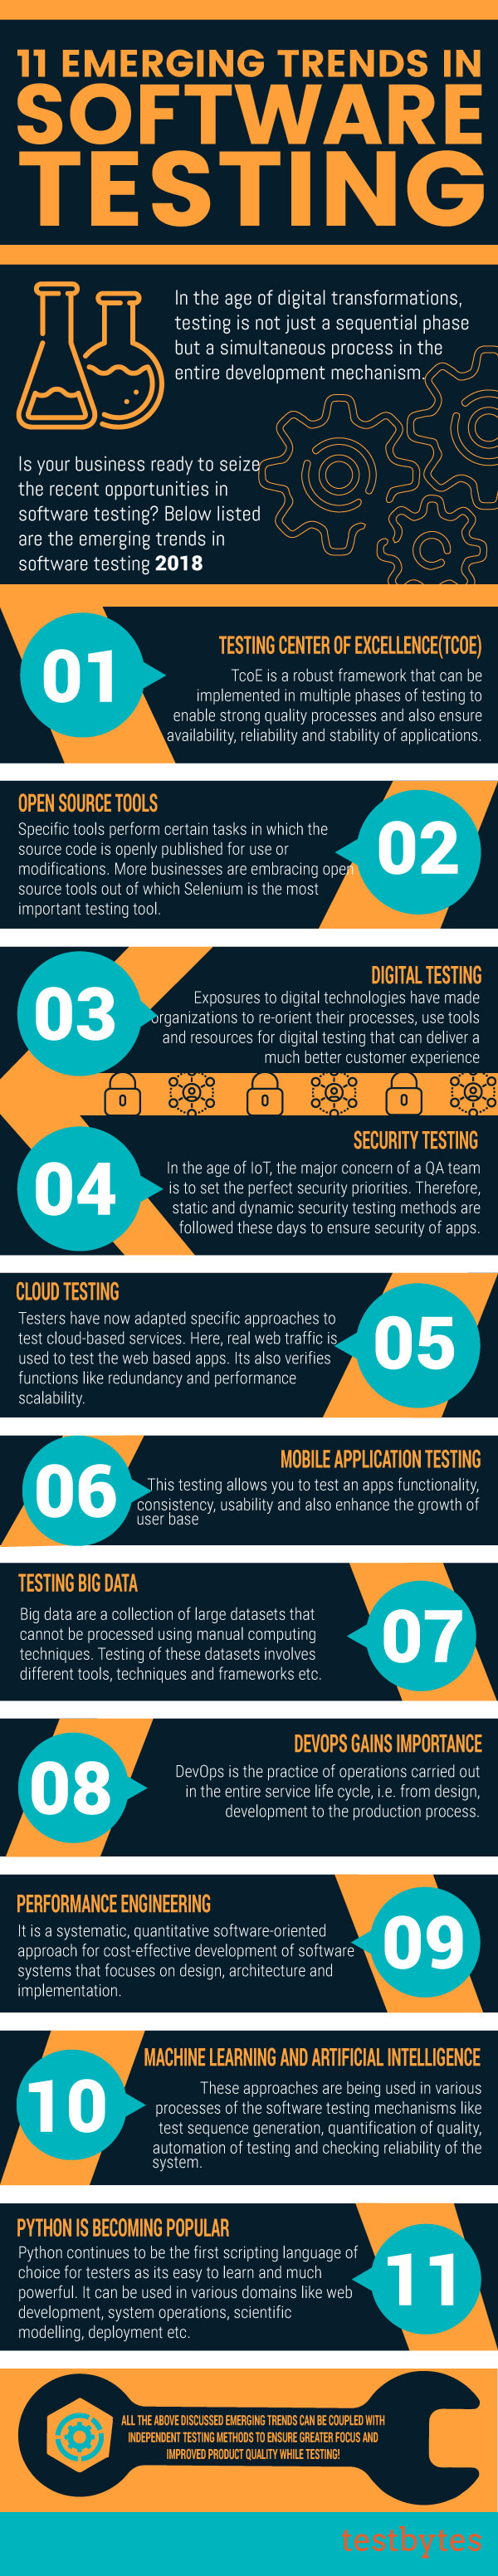 11 Emerging Trends in Software Testing 2018